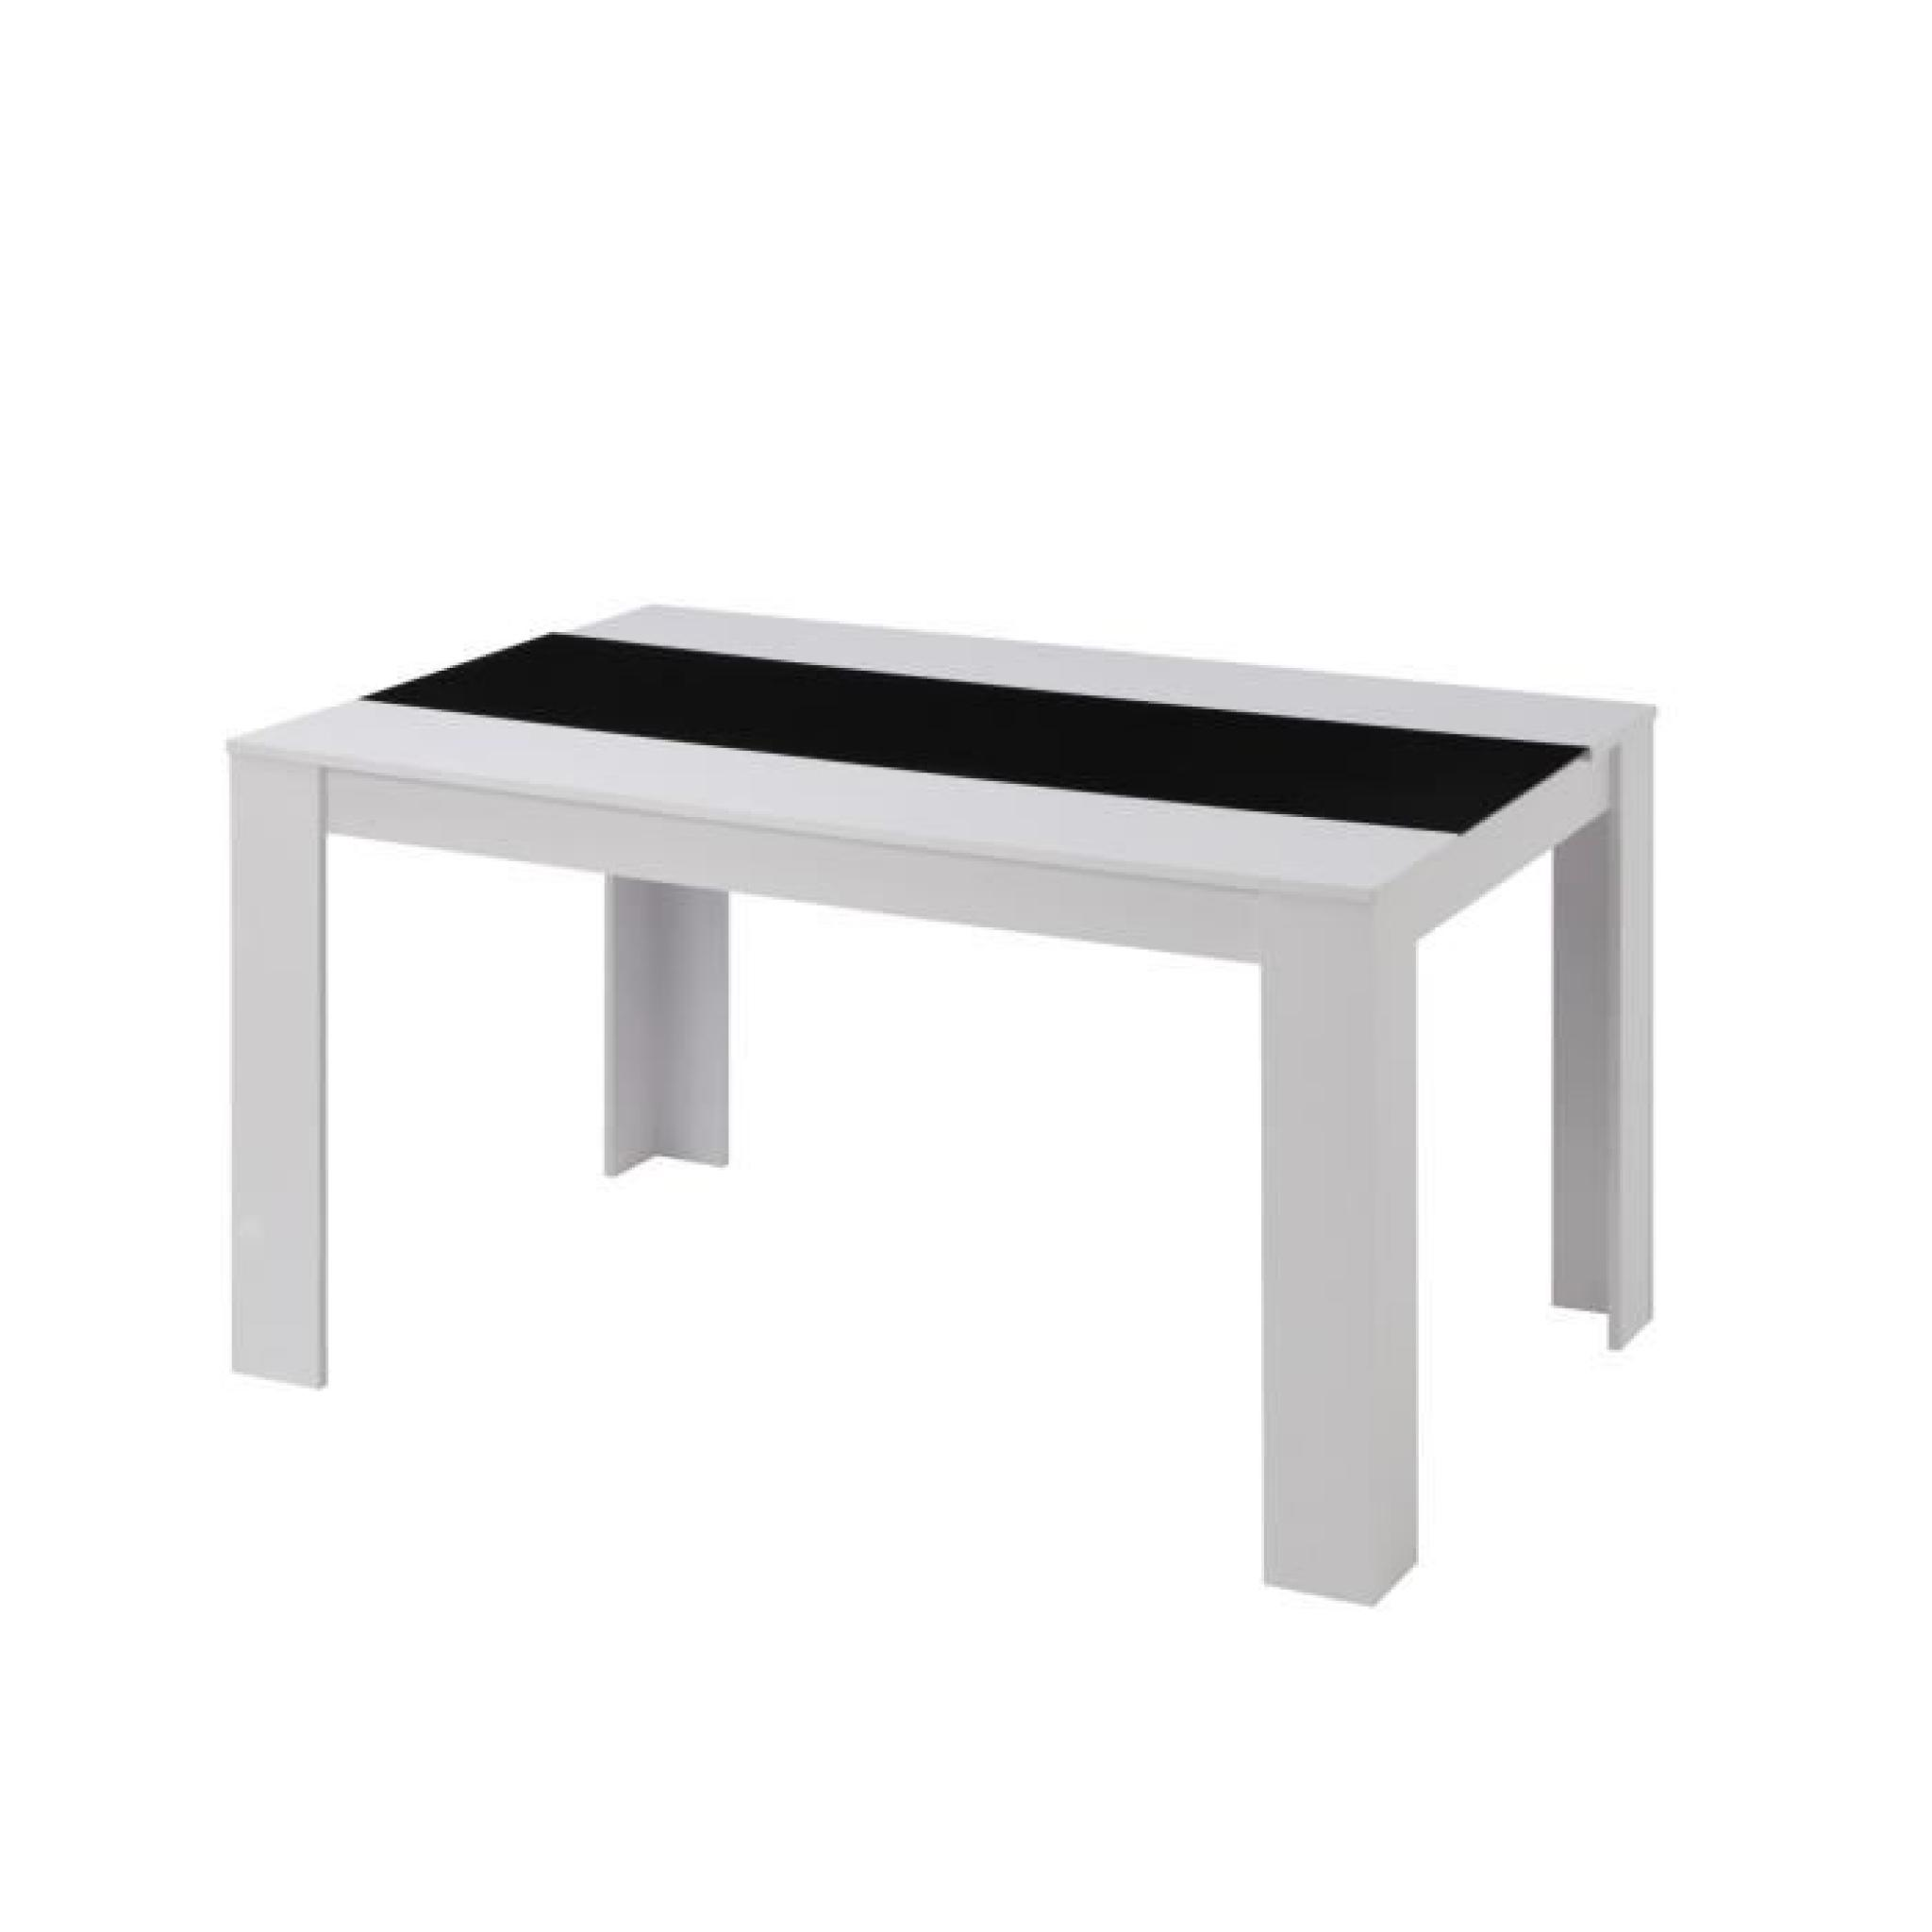 damia table manger 140x90cm noir et blanc achat vente. Black Bedroom Furniture Sets. Home Design Ideas